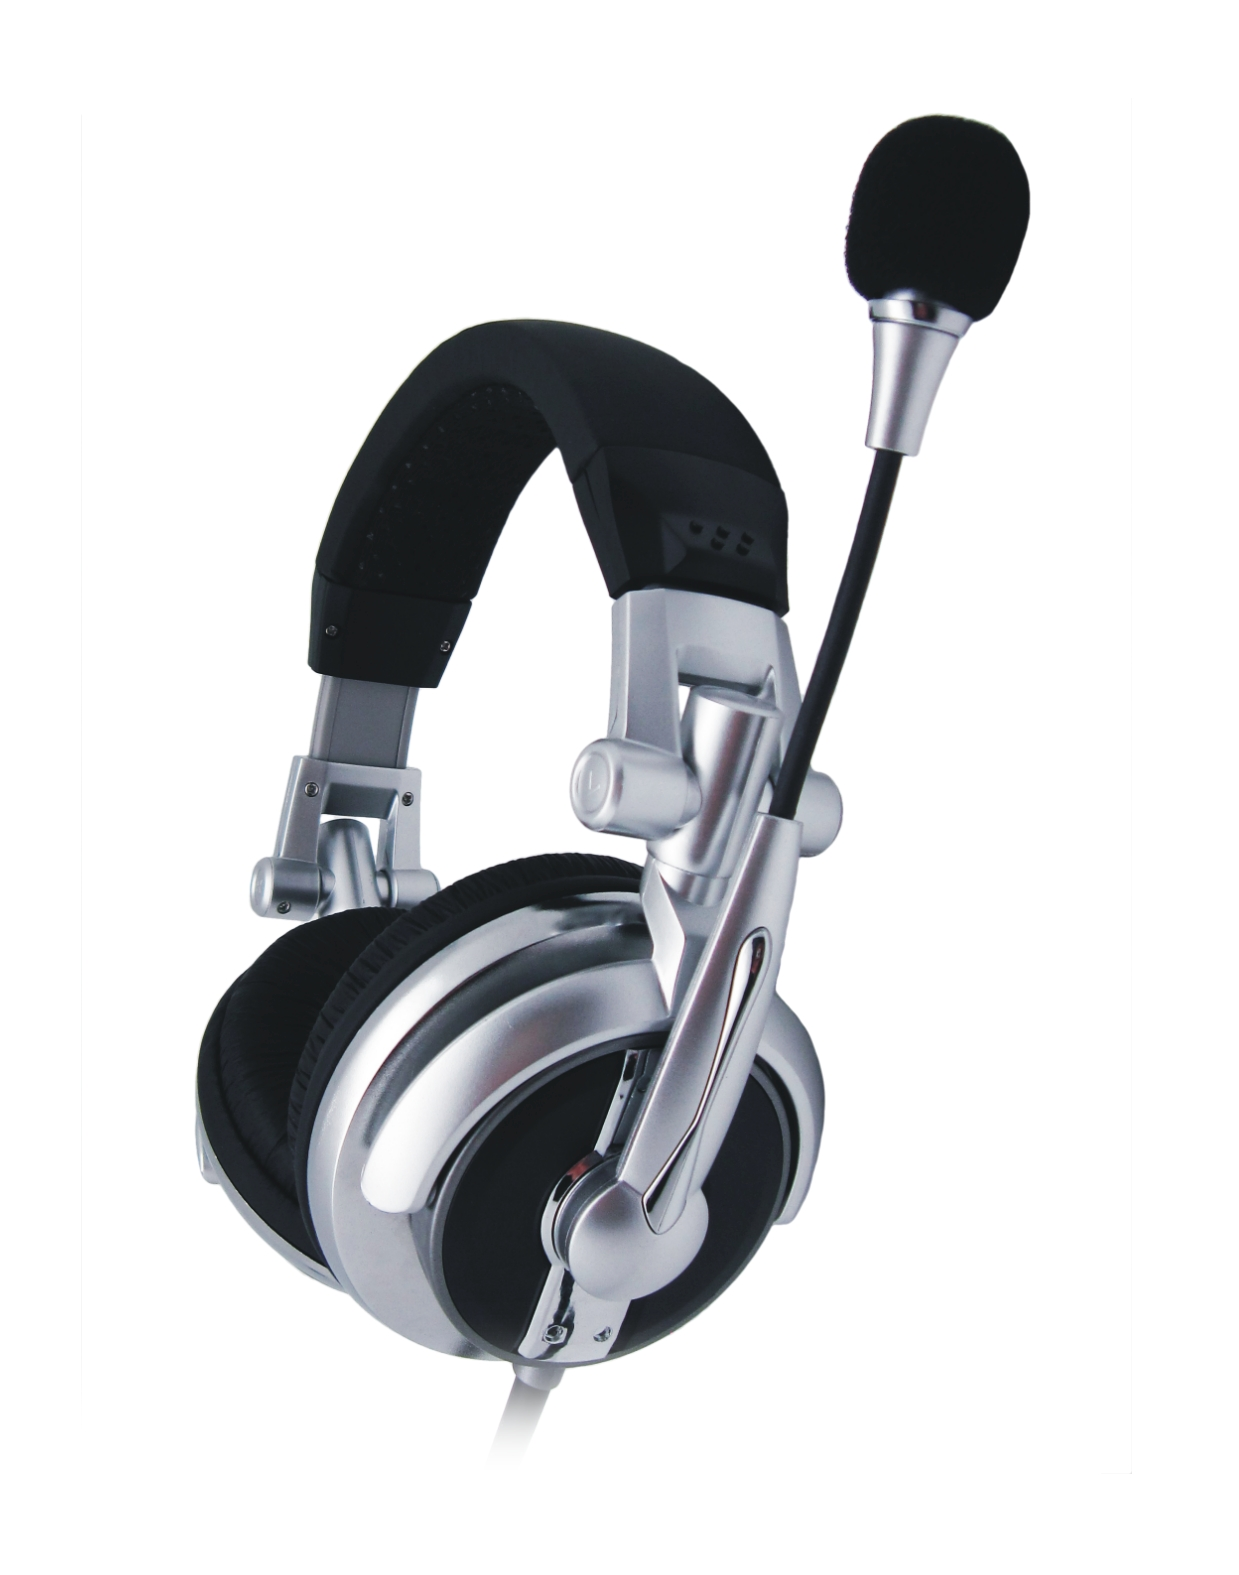 Comfortable Mobile Music Wired Headphones